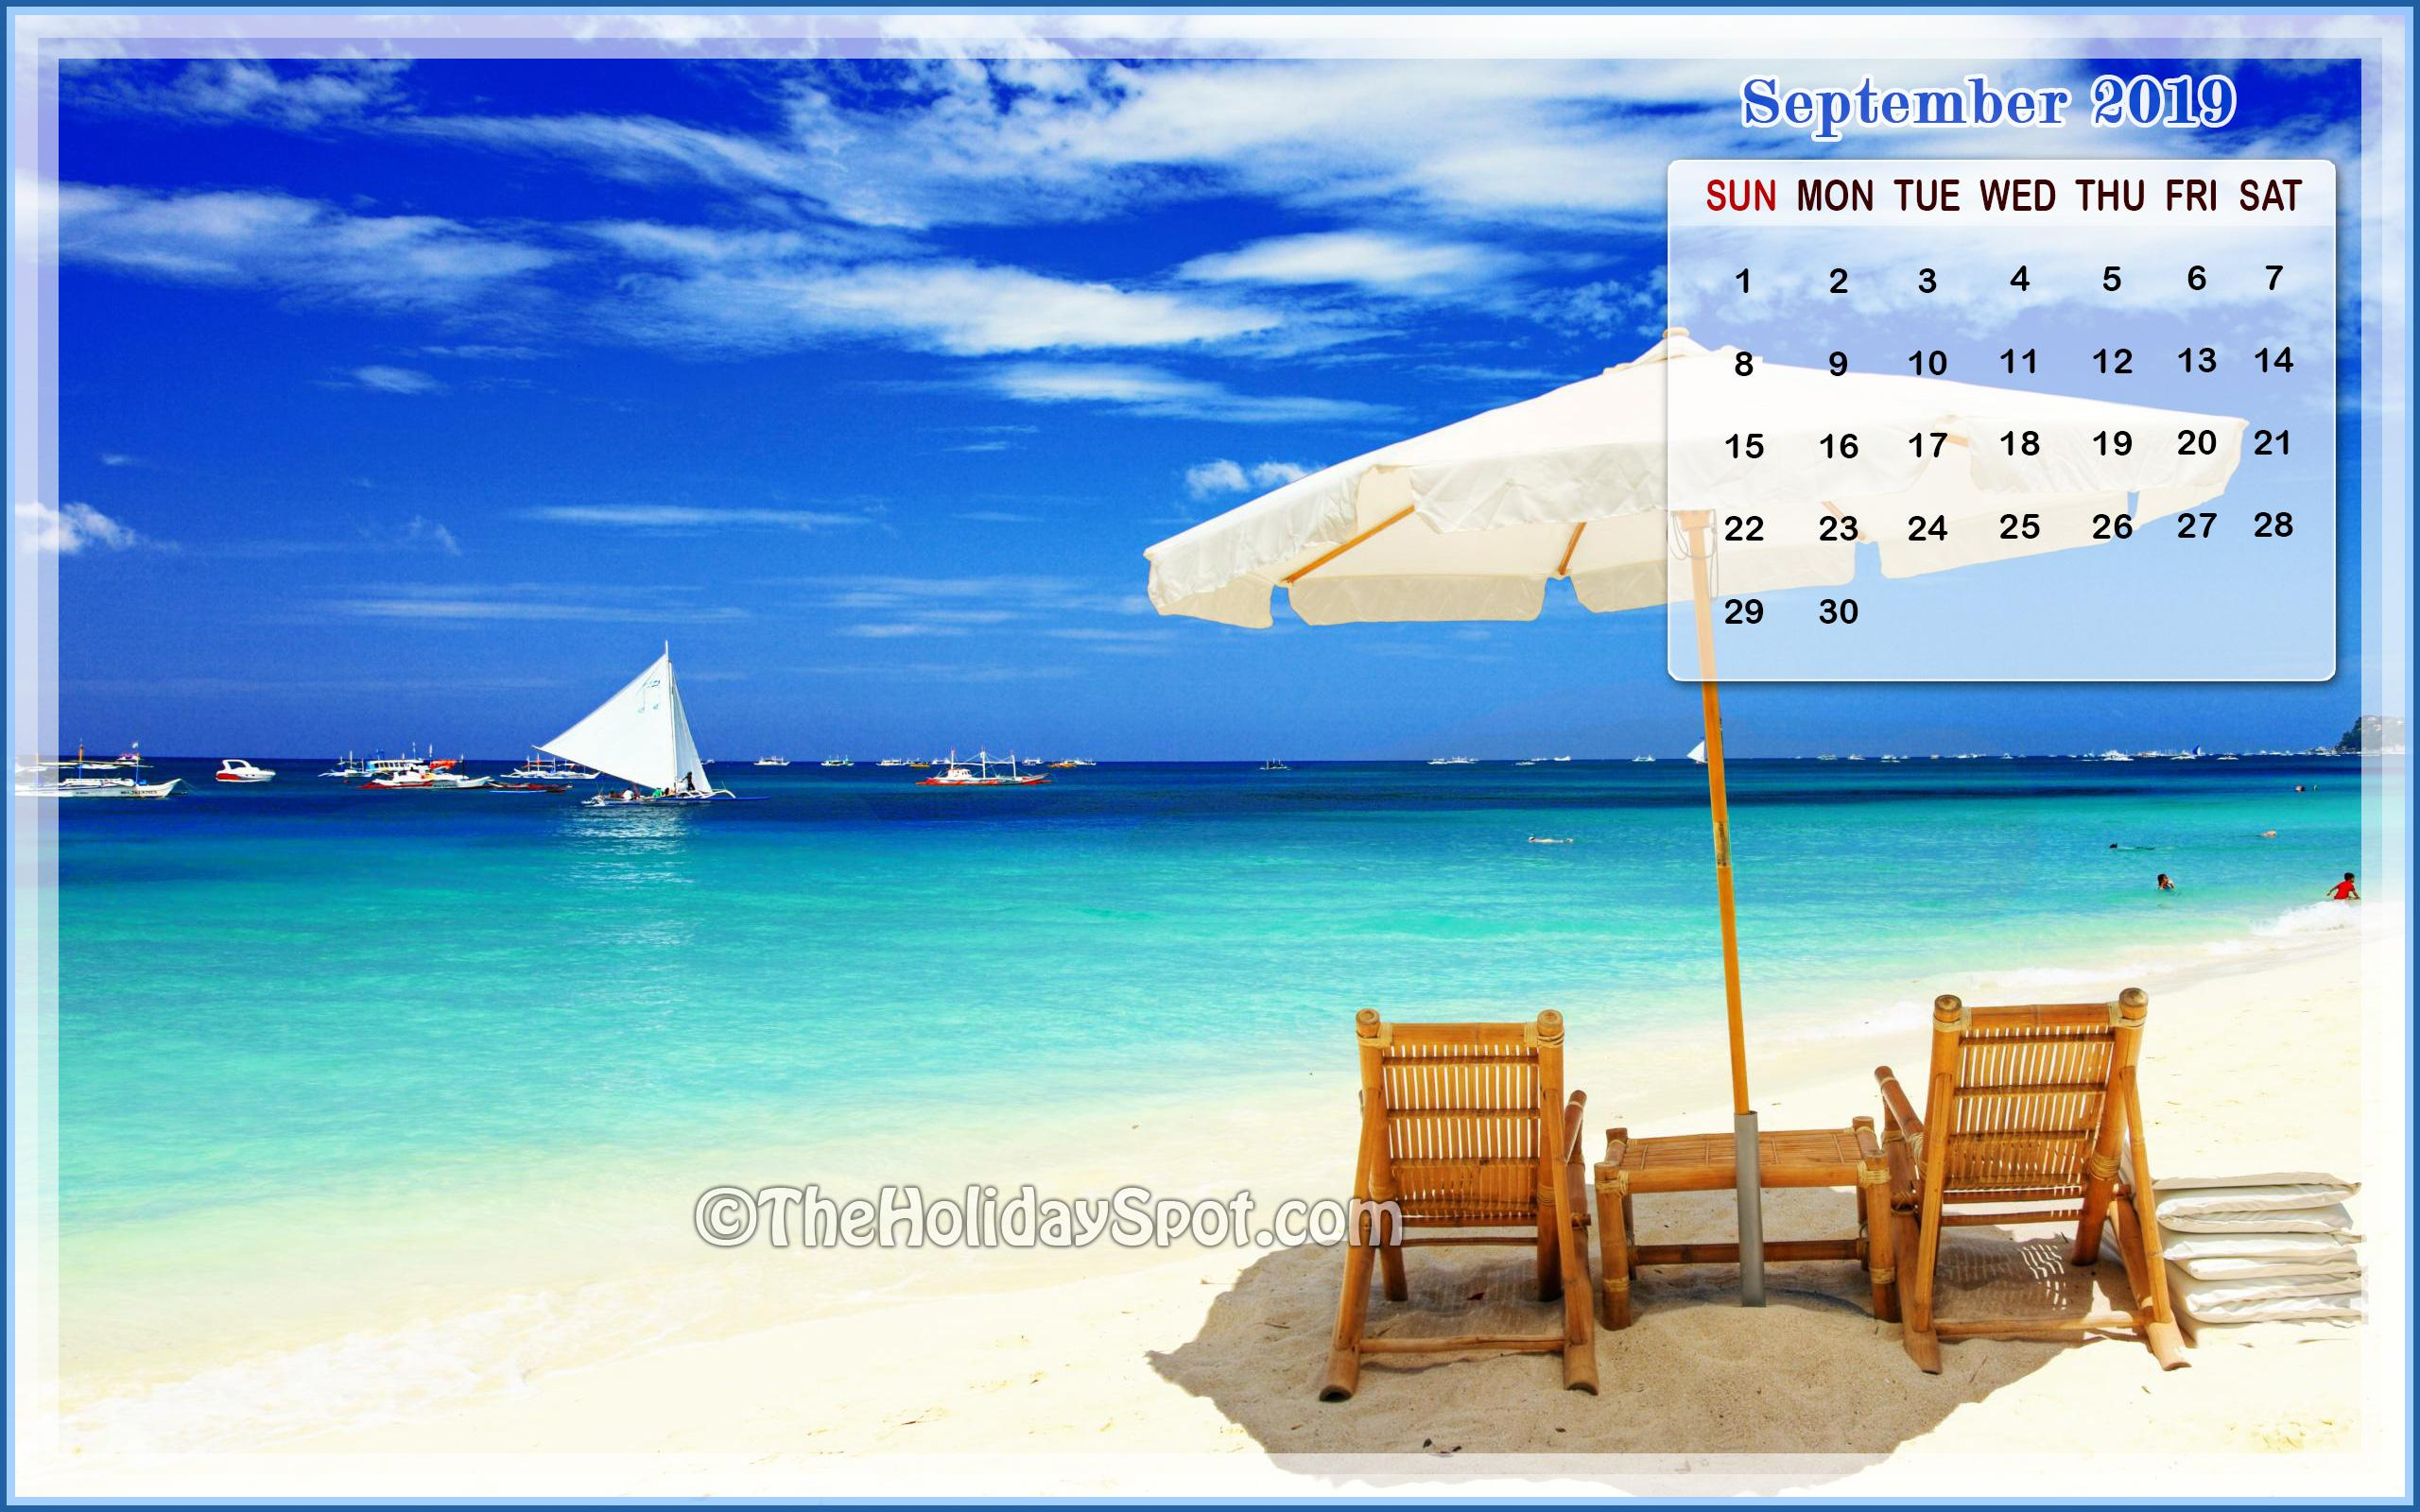 September 2019 Calendar Wallpapers